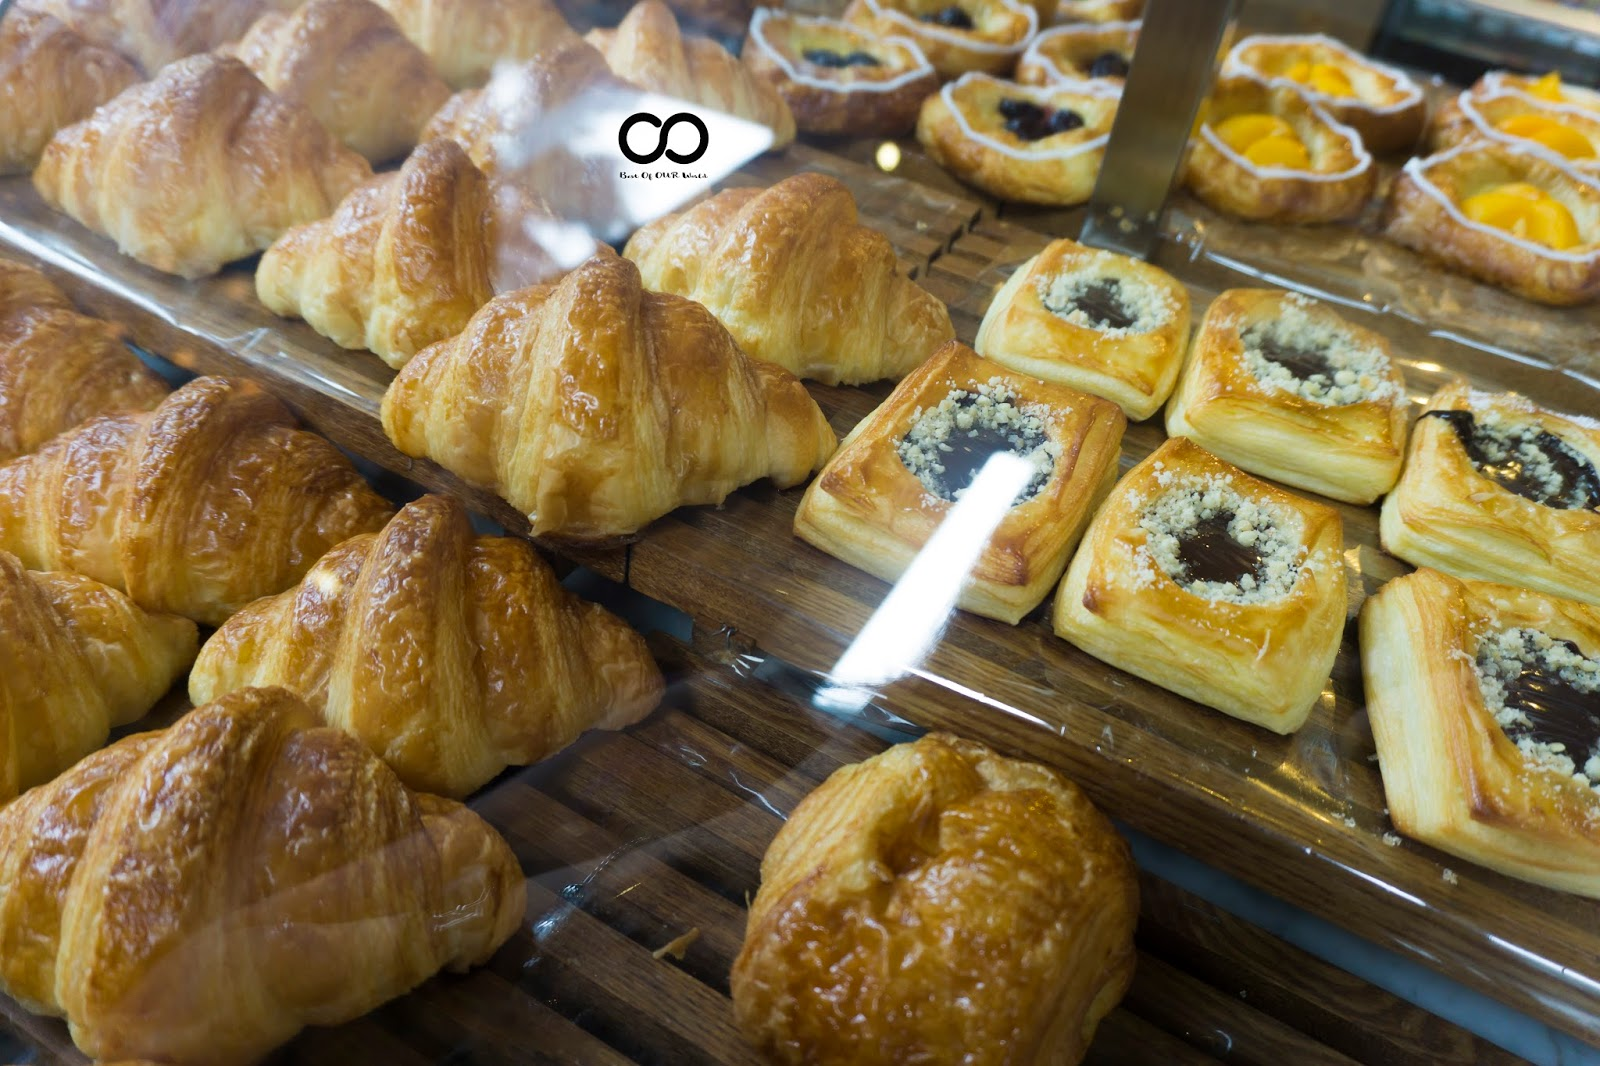 breads, pastries and cakes